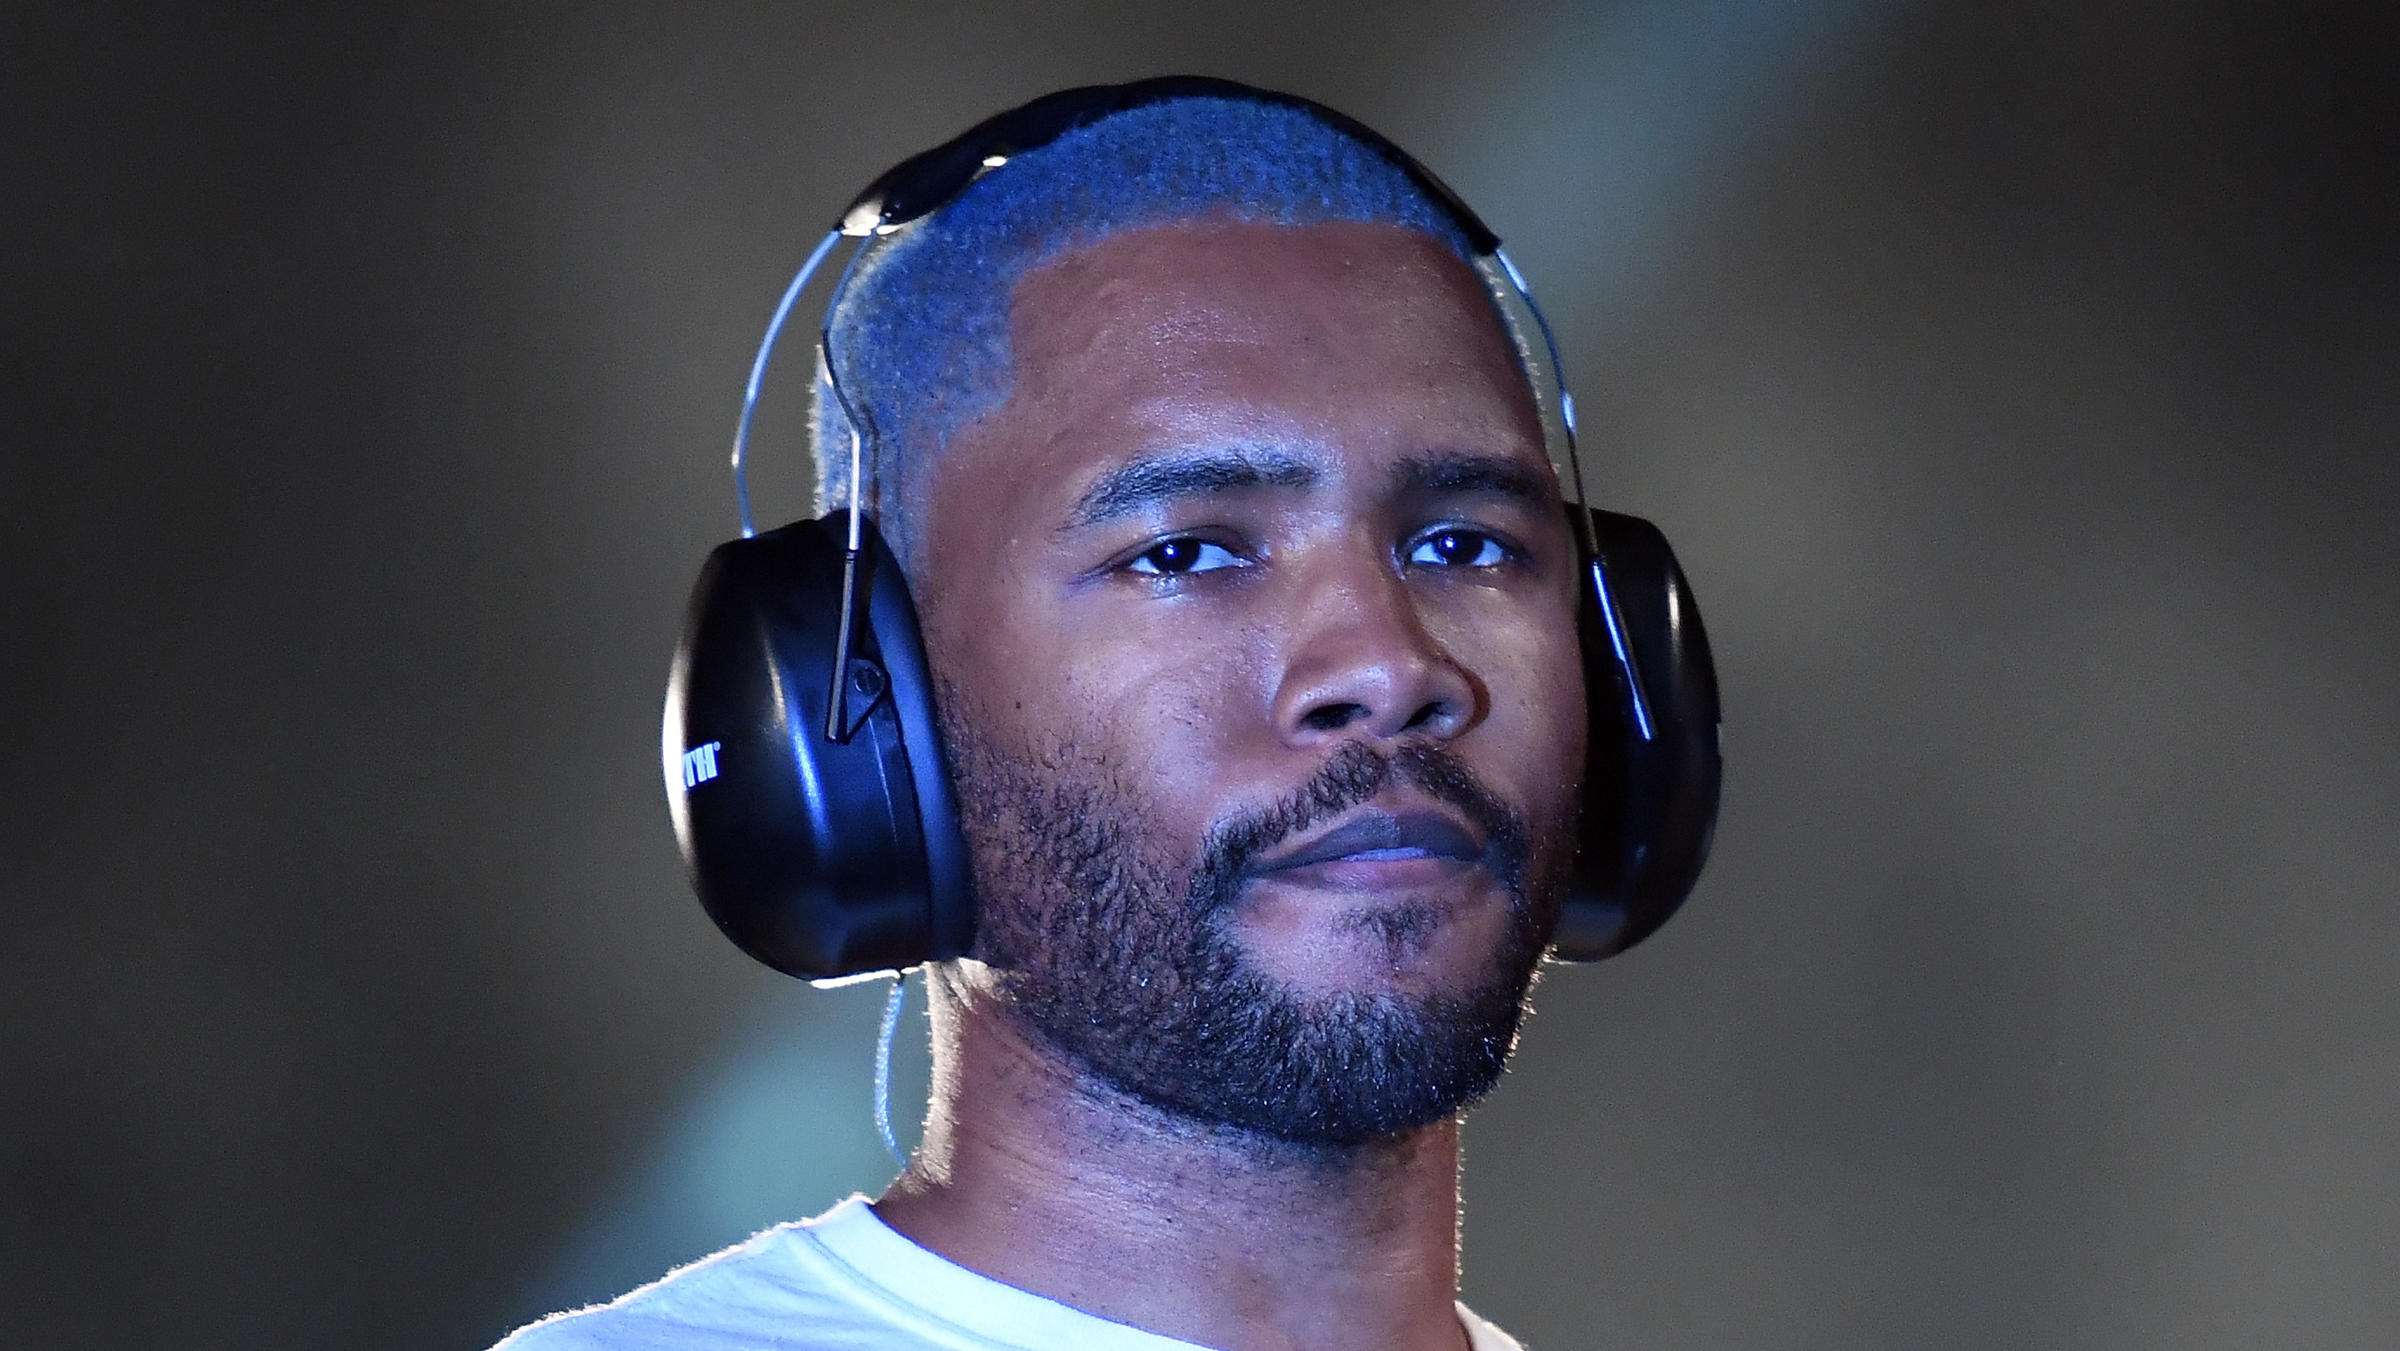 Frank Ocean shares cover of